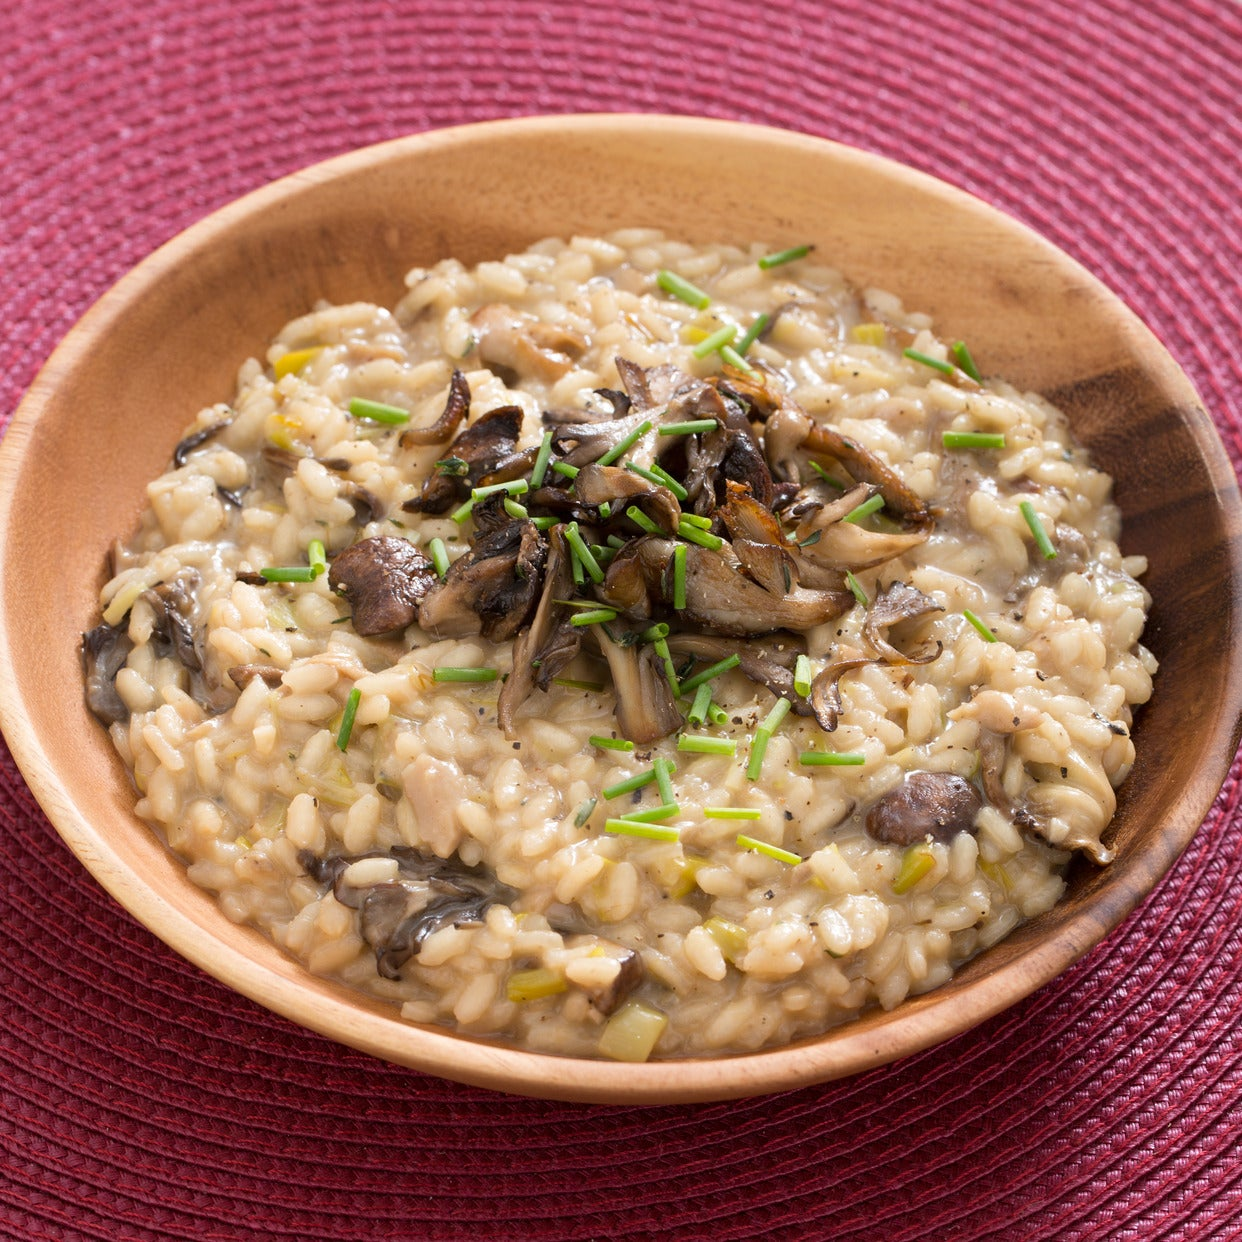 Mixed Mushroom Risotto with Porcini Broth, Leek & Chives